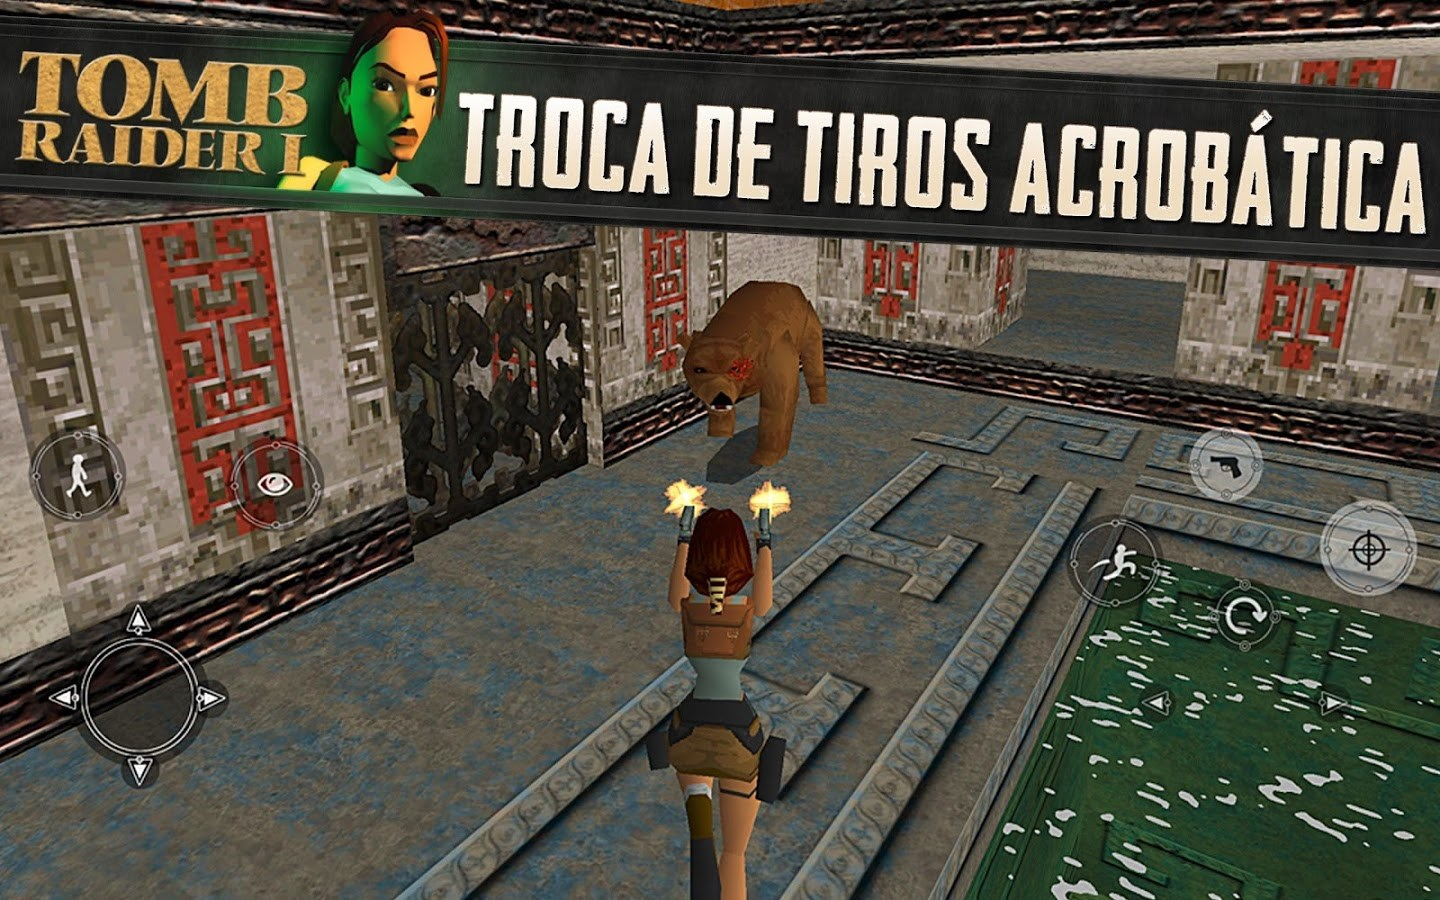 Tomb Raider I - Imagem 1 do software